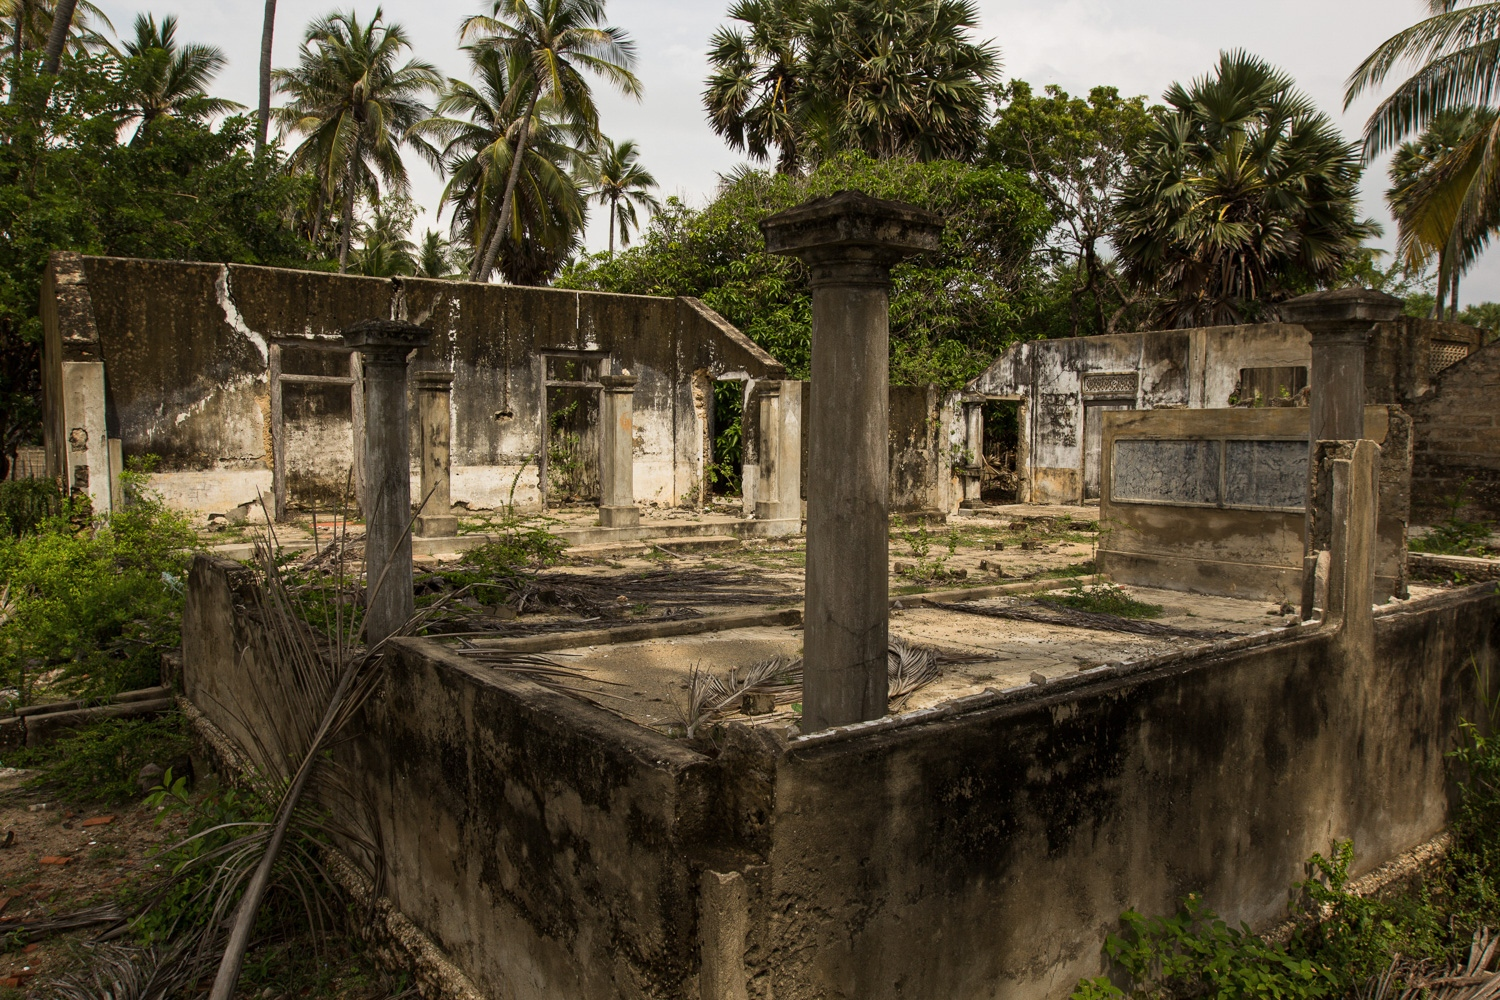 A forgotten home of Jaffna, during the 1980s Jaffna became the frontline of the 30-year civil war. Many of the houses have not been touched in the decades since. (November, 2015)